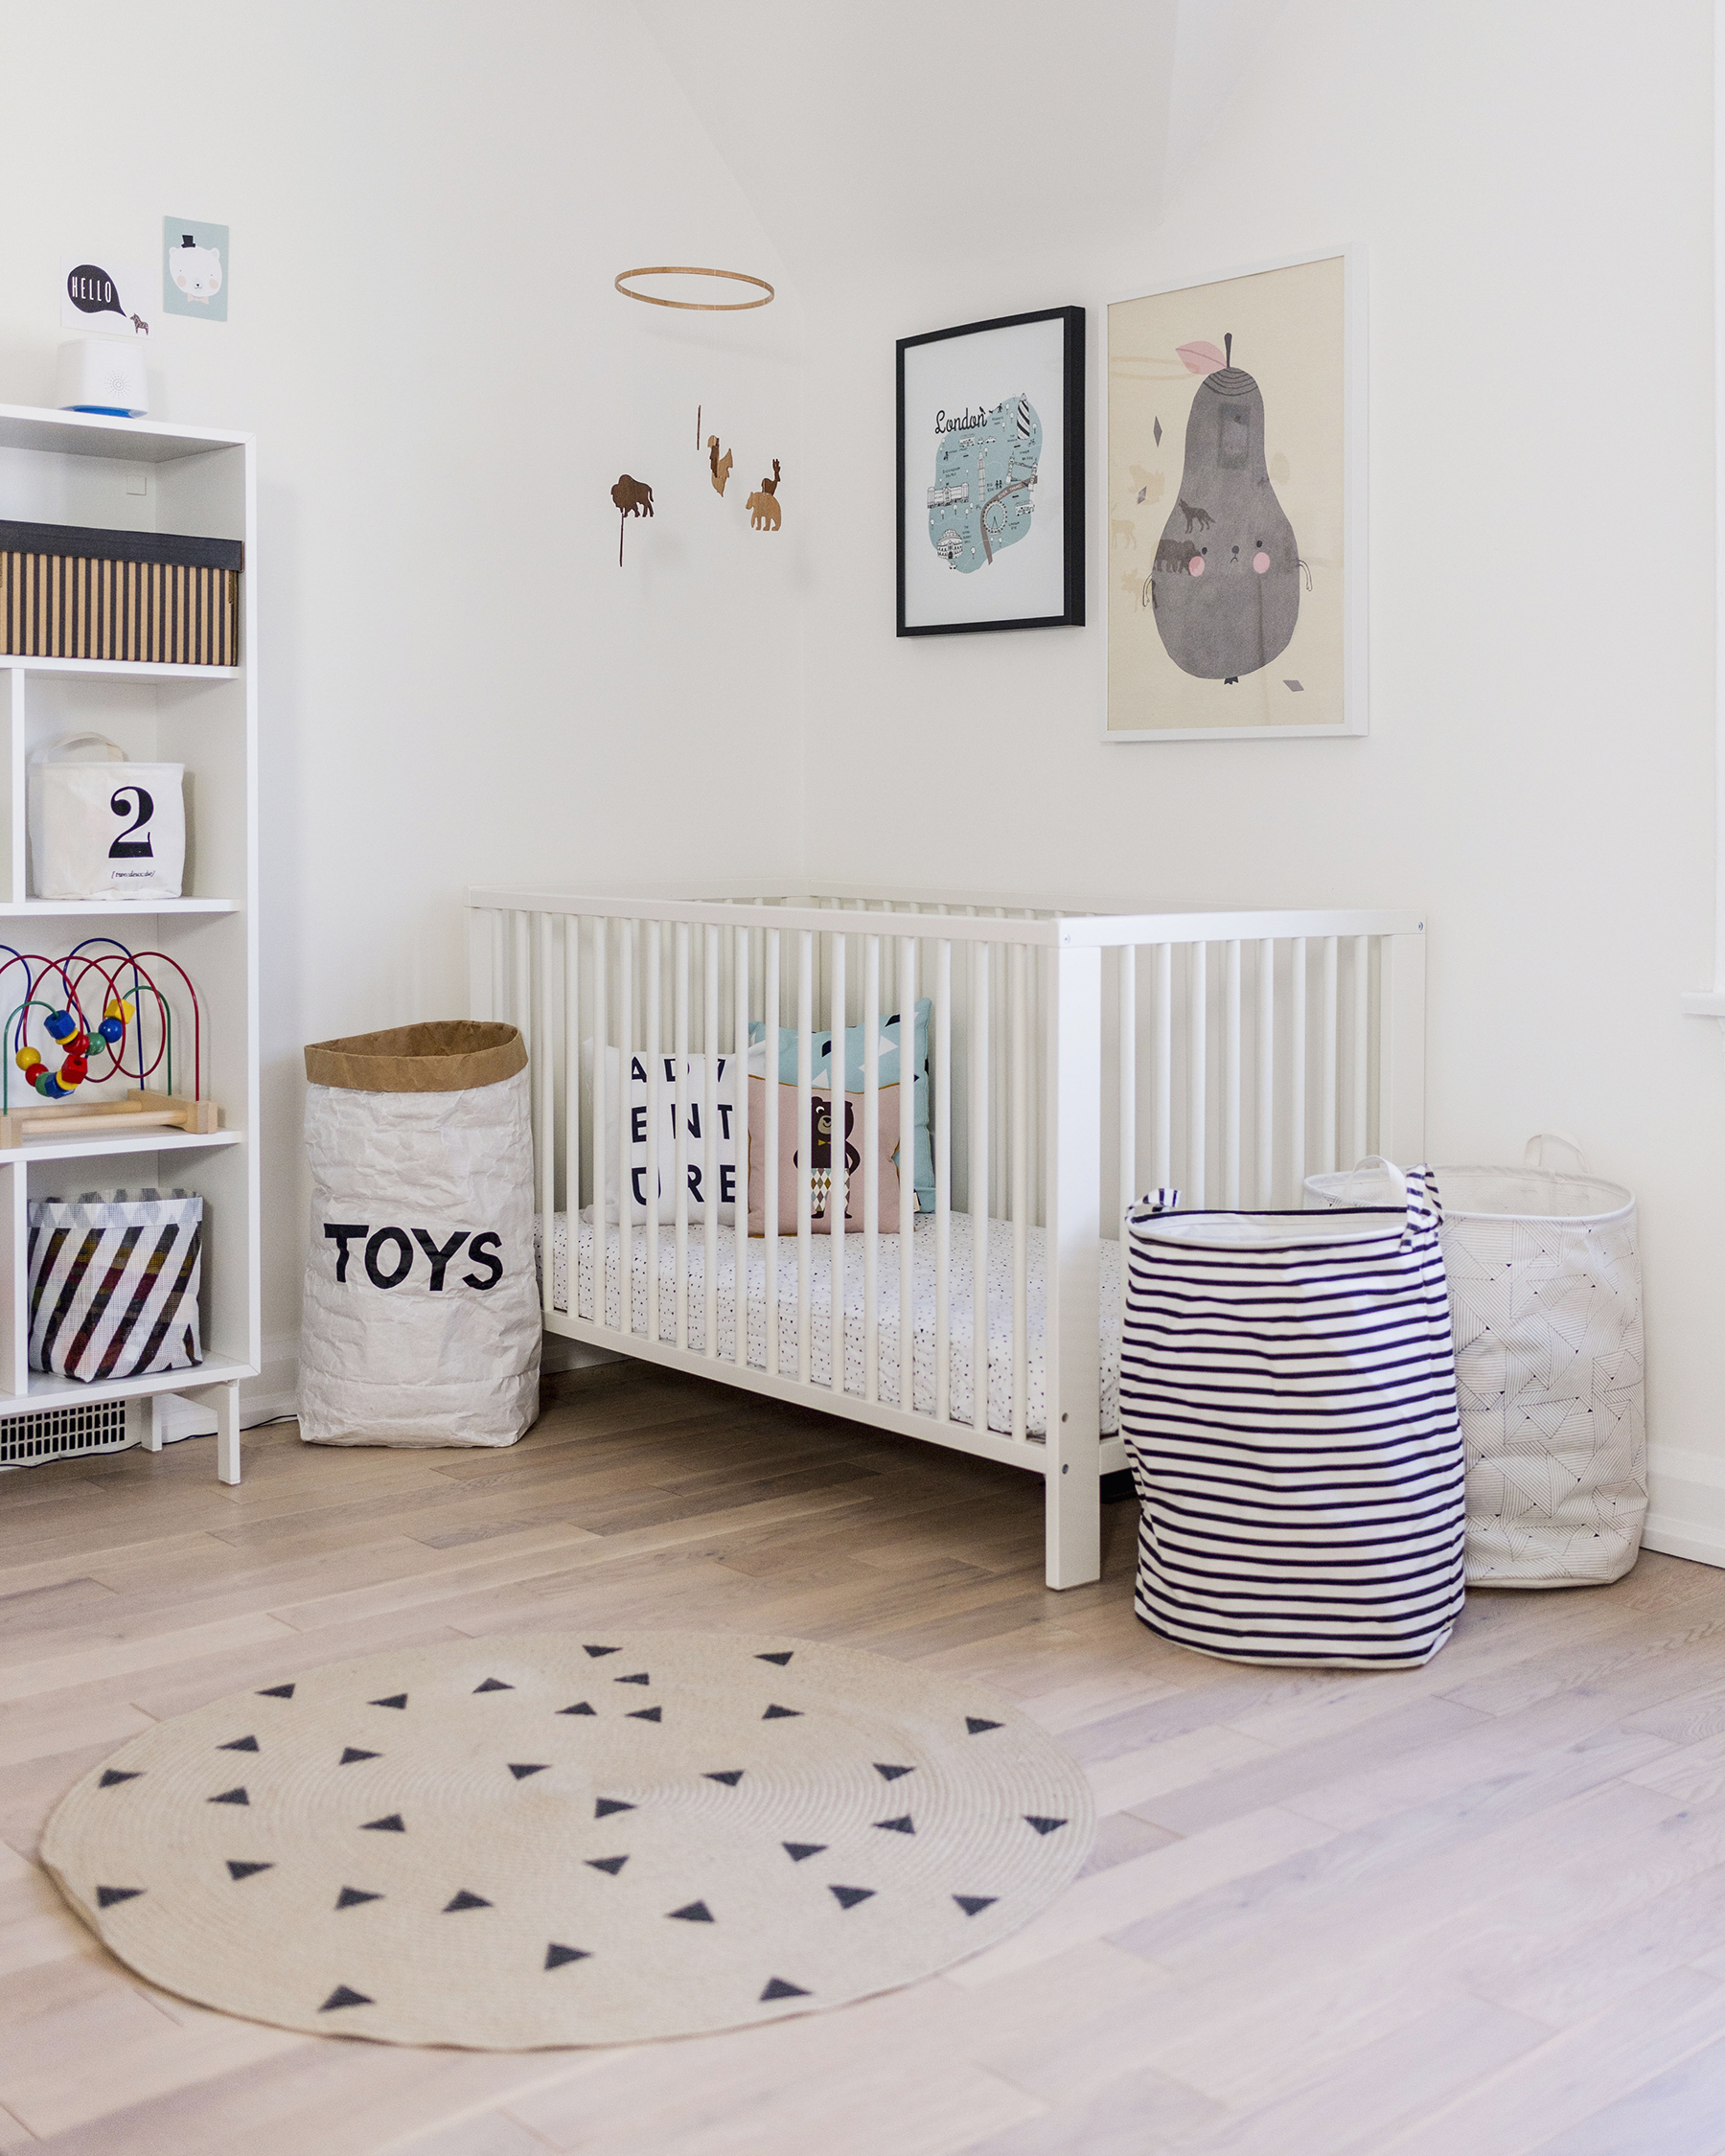 Interior Design Of Bedroom Images Wall Decor For Kids Bedroom Bedroom Ideas On A Budget Bedroom Colors For Males: 20 Gorgeous Scandinavian Decor Ideas & Projects